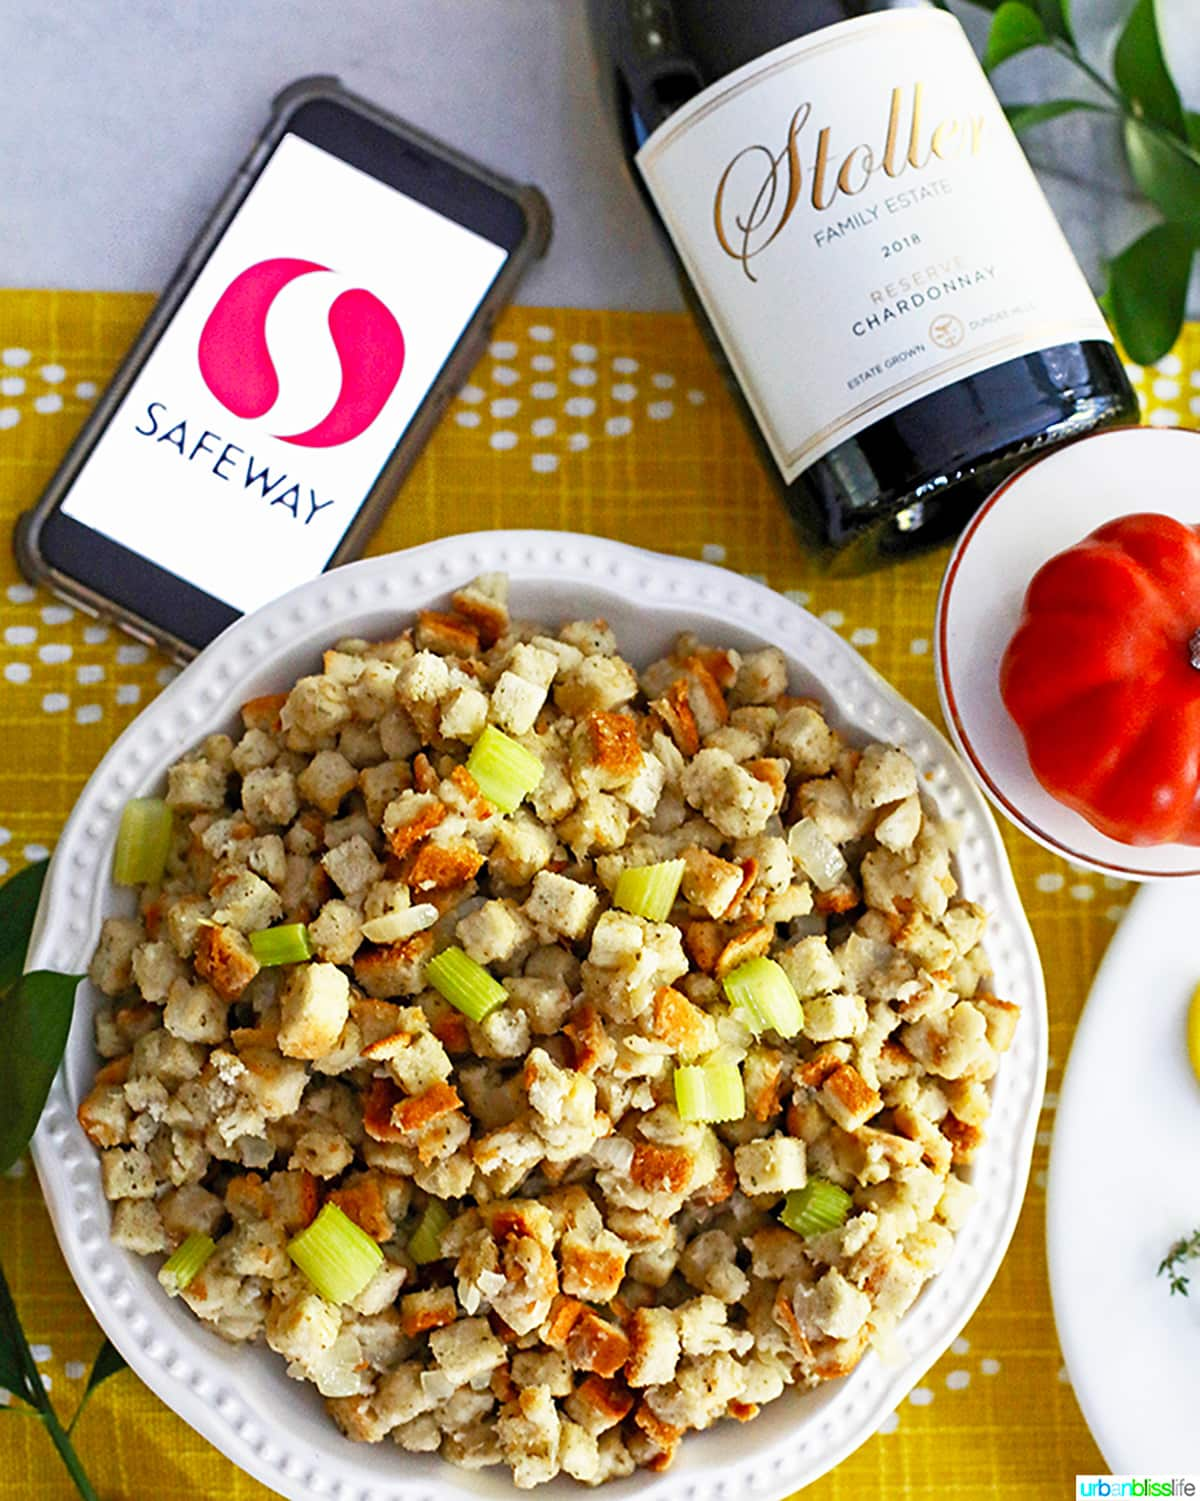 thanksgiving stuffing with stoller wine and safeway logo on phone